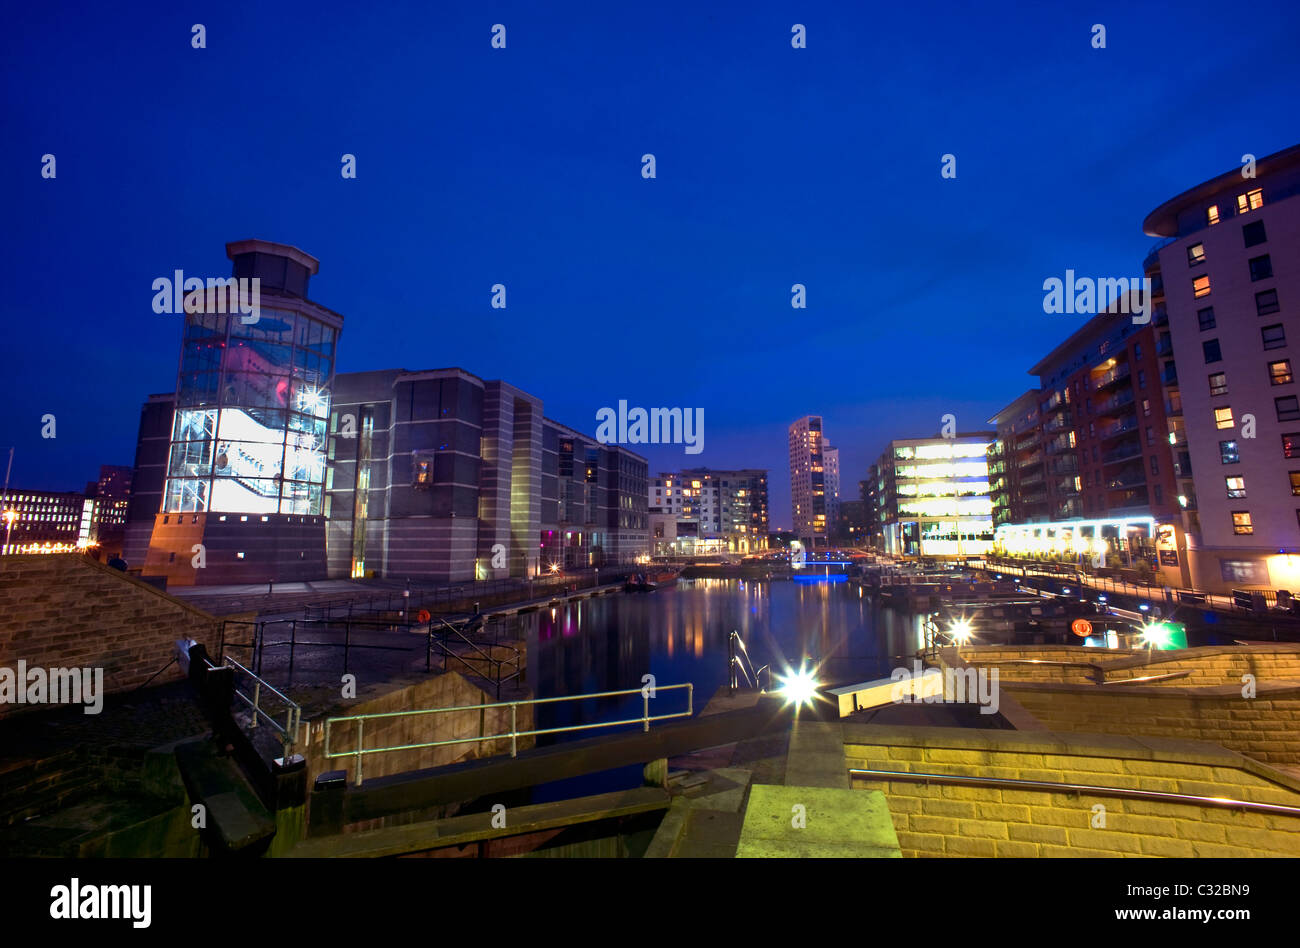 royal armouries building reflected in dock on the aire/calder canal at dusk leeds yorkshire uk - Stock Image